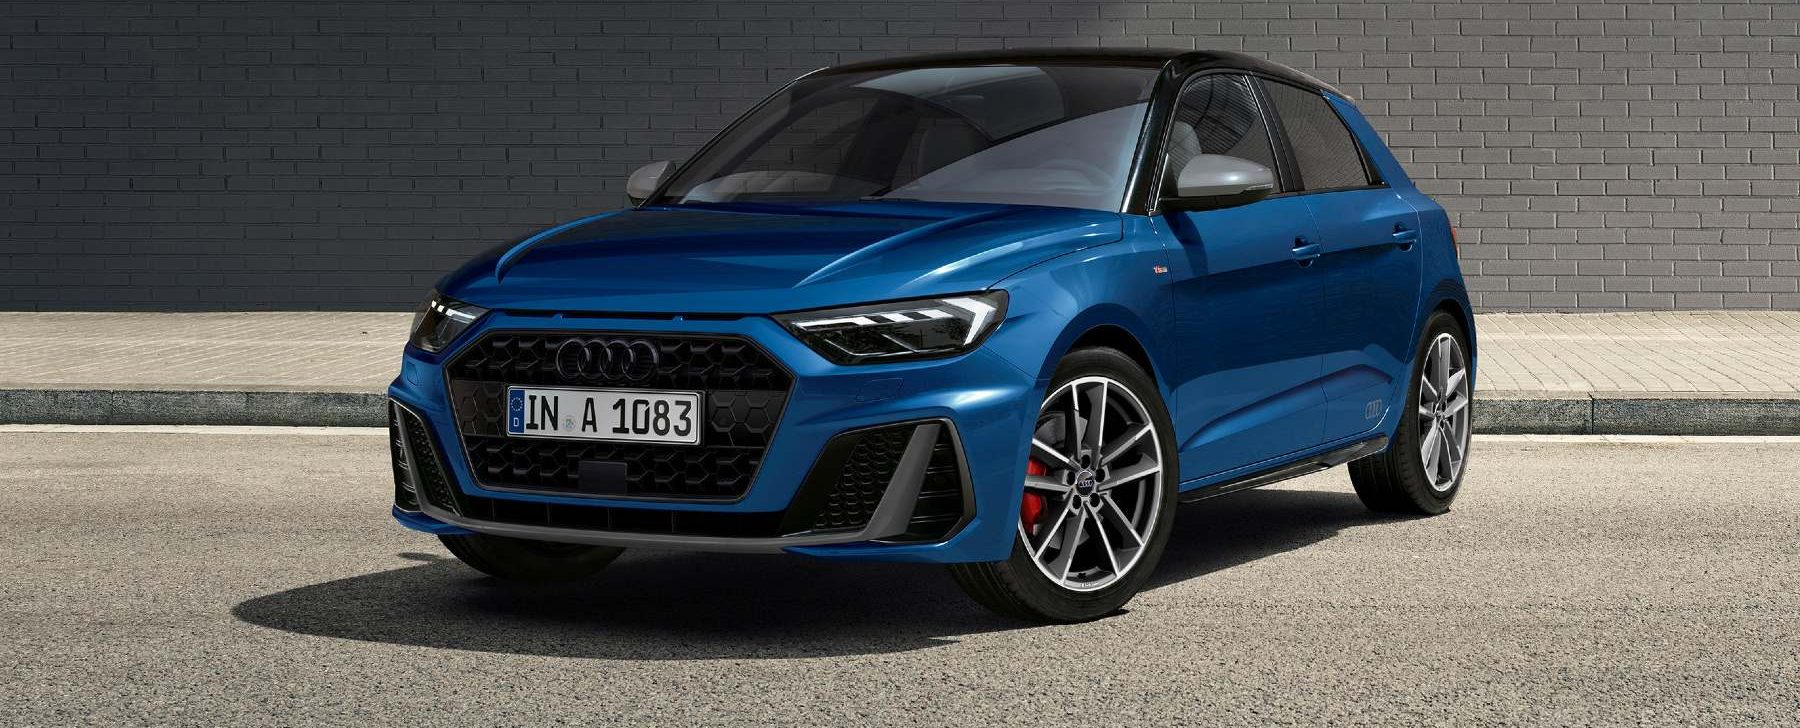 Audi A1 Competition 40 TFSI